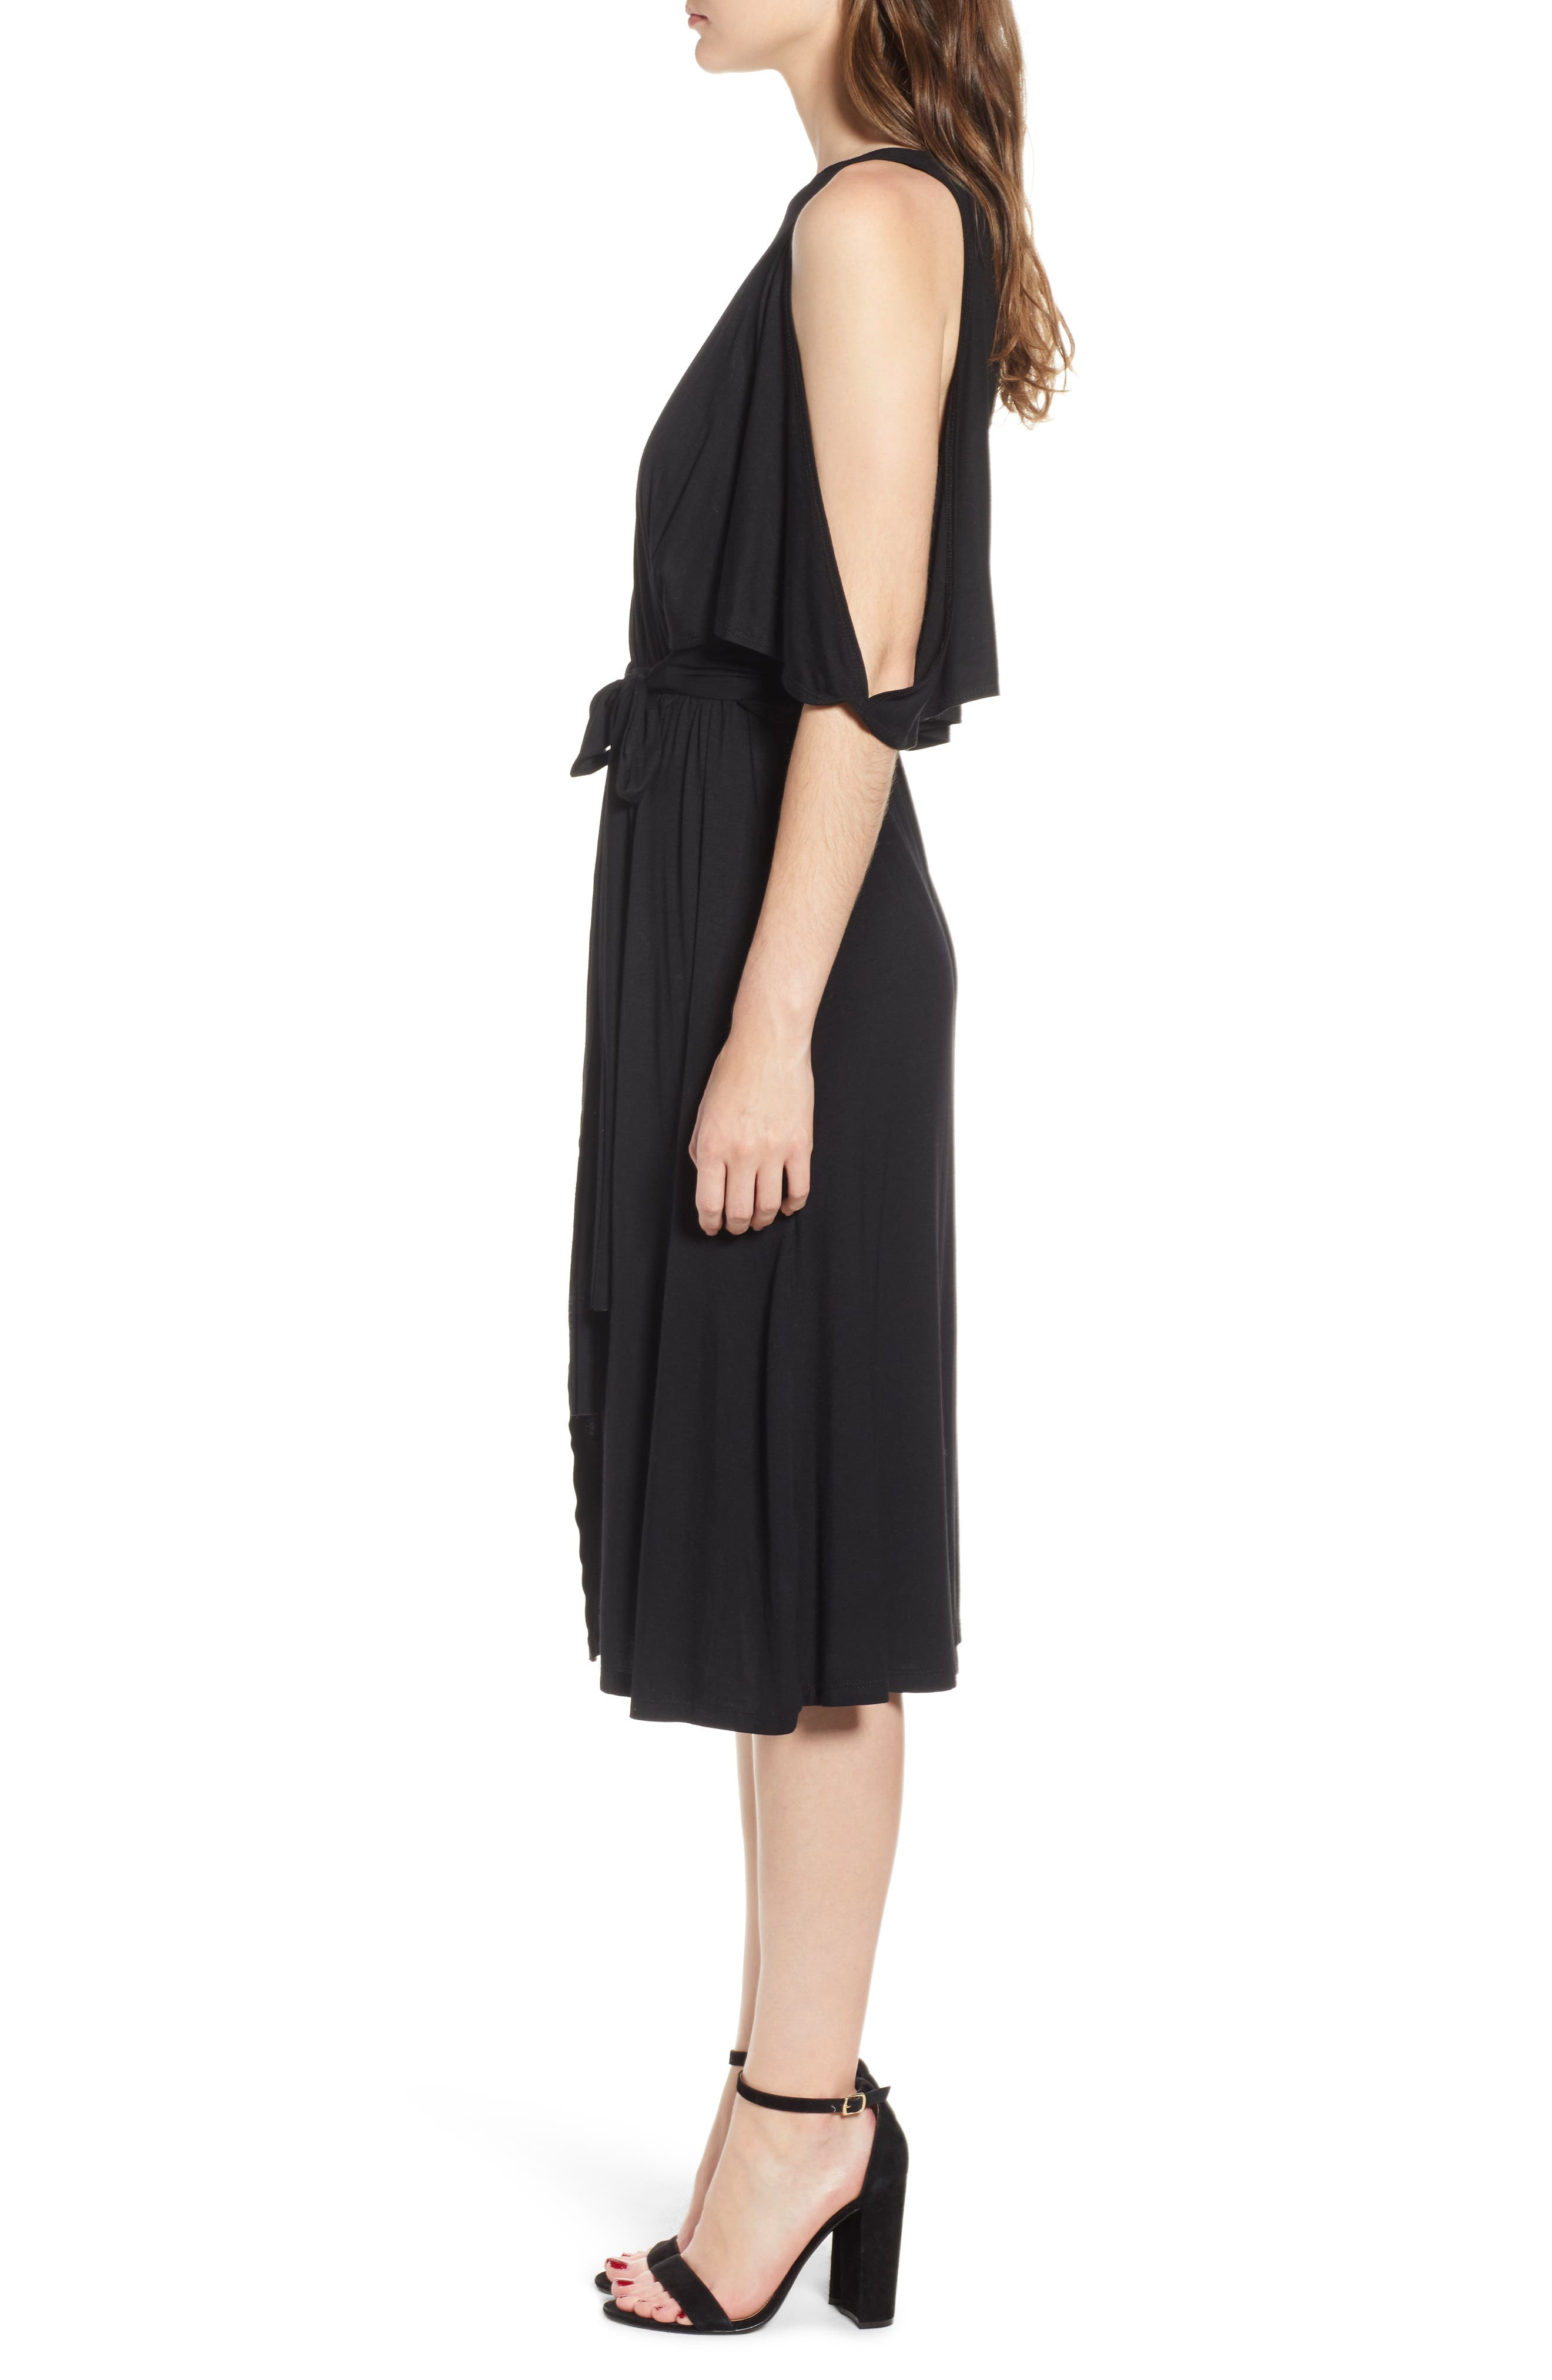 Bishop + Young Slit Sleeve Wrap Style Dress,                             Alternate thumbnail 3, color,                             001